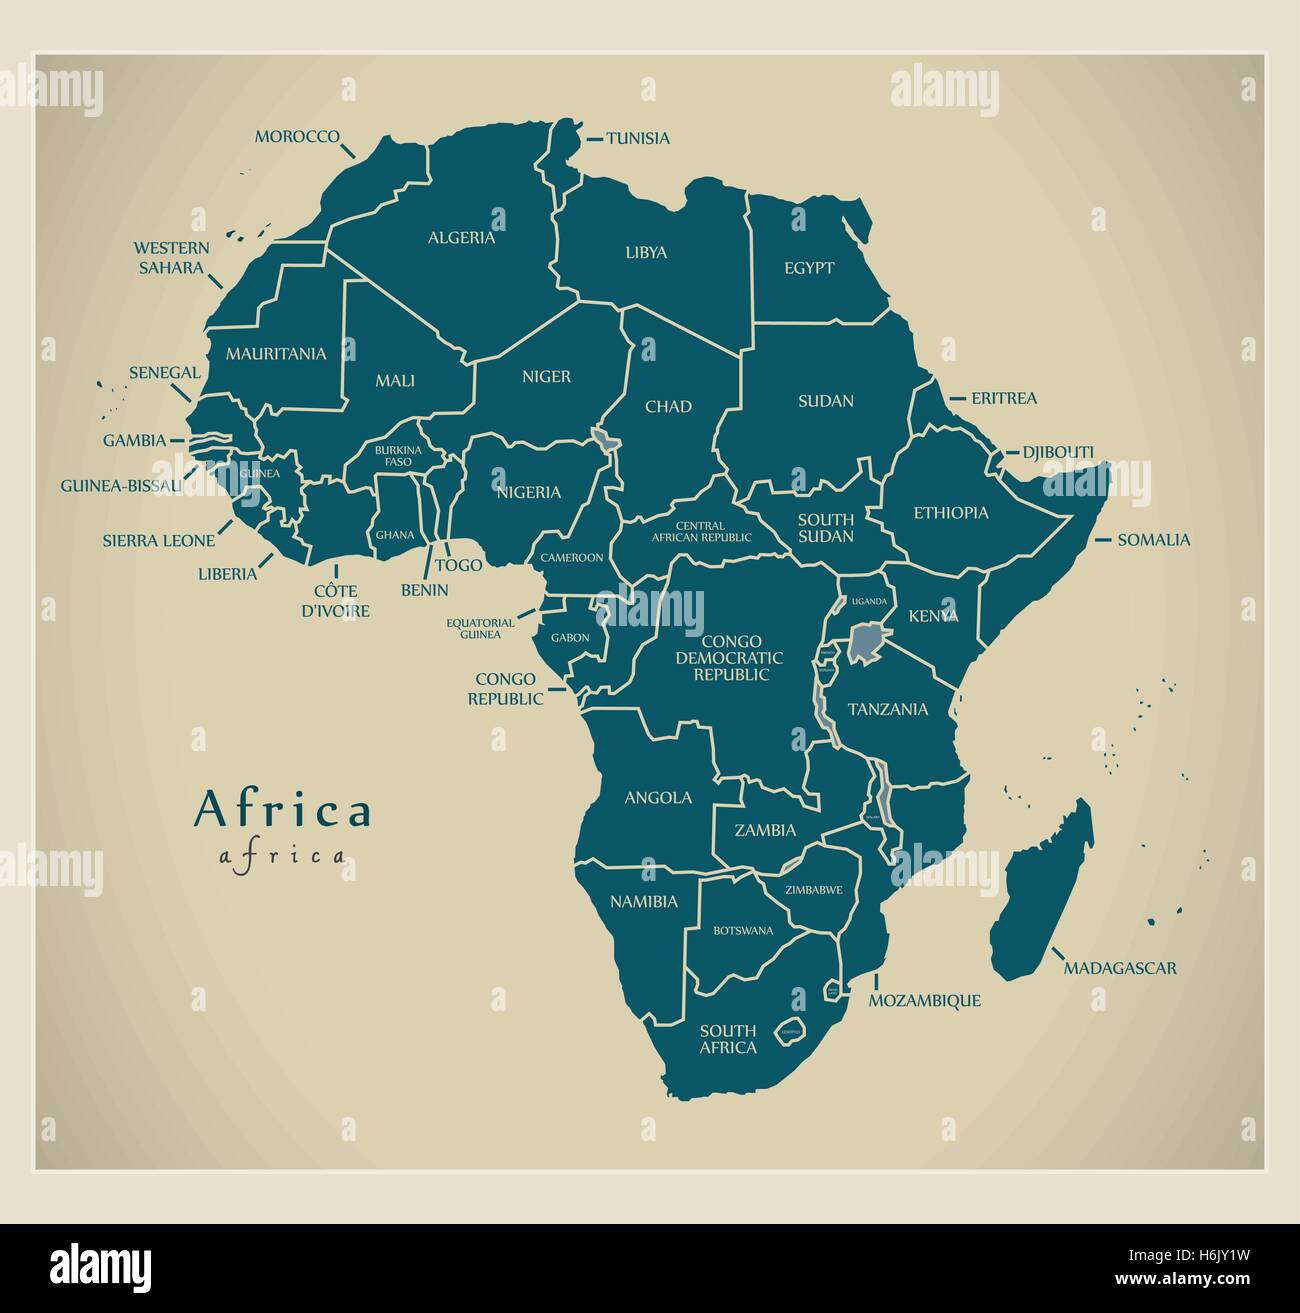 Modern Map   Africa continent with country labels Stock Vector Art